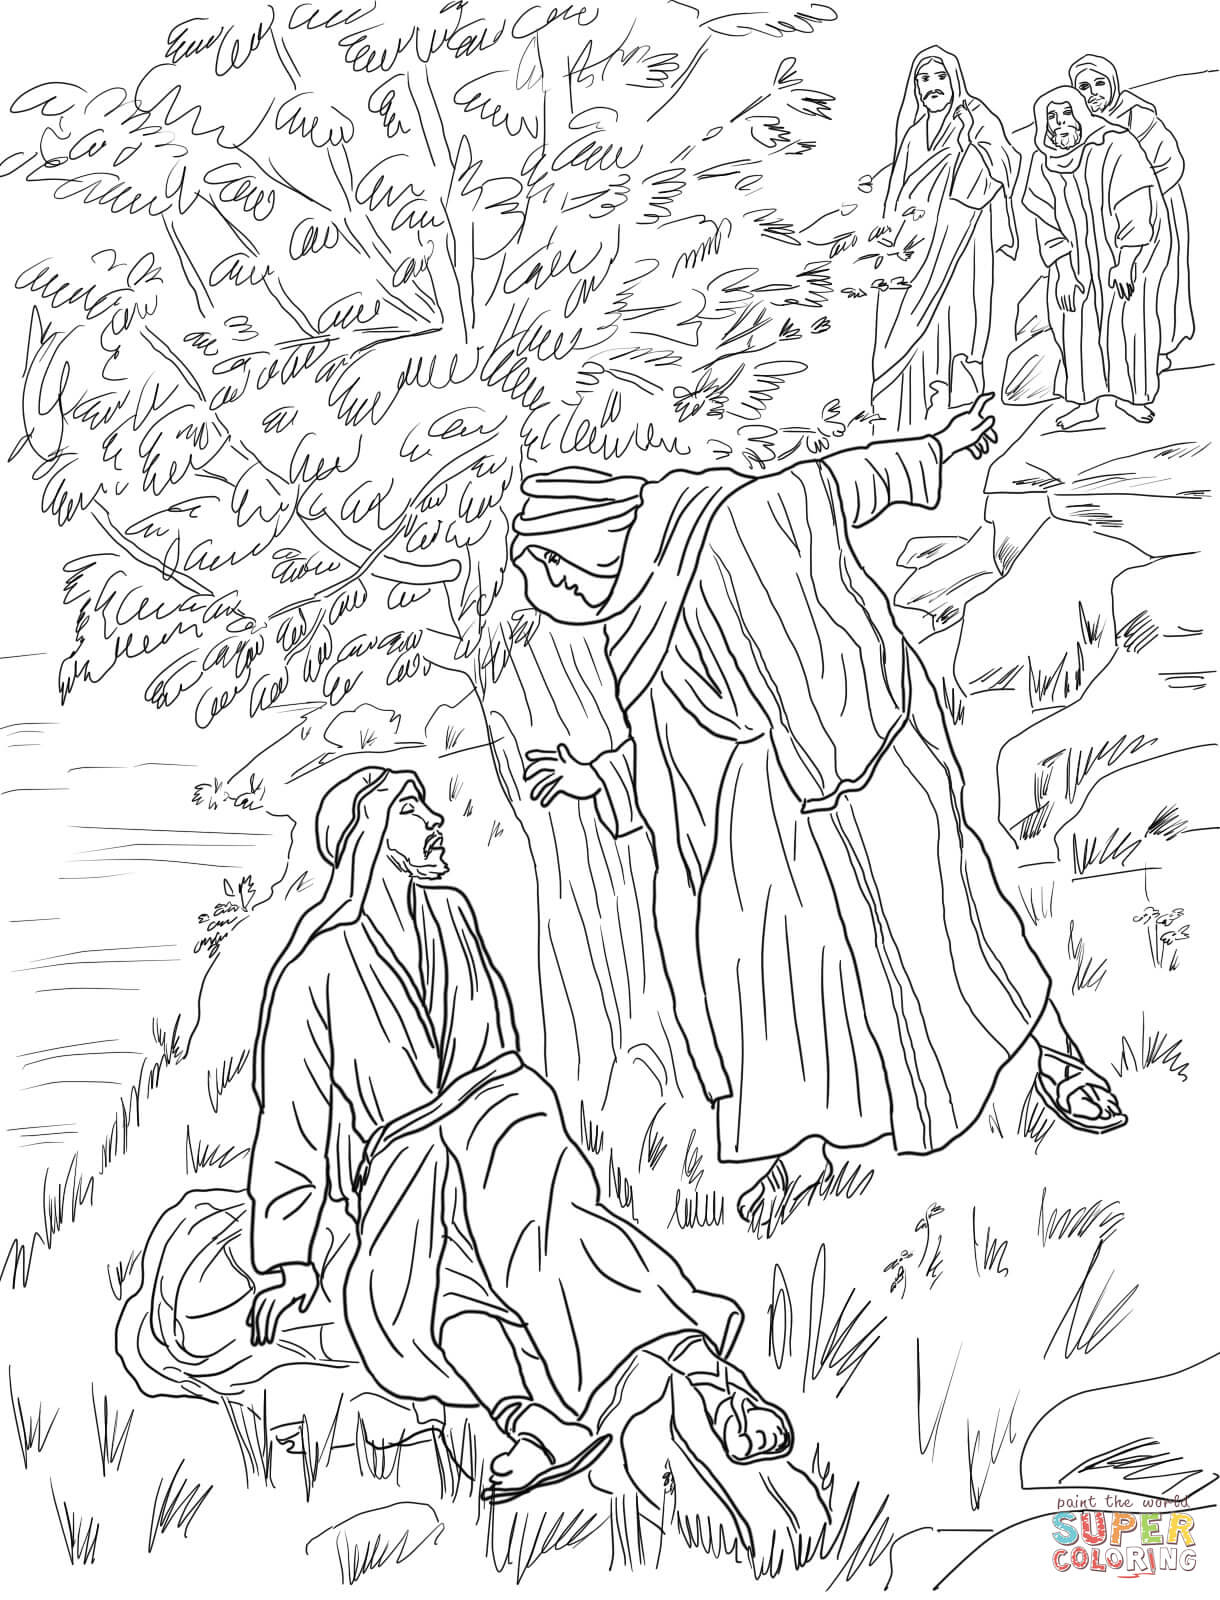 Jesus Calls Philip And Nathanael Coloring Page | Free